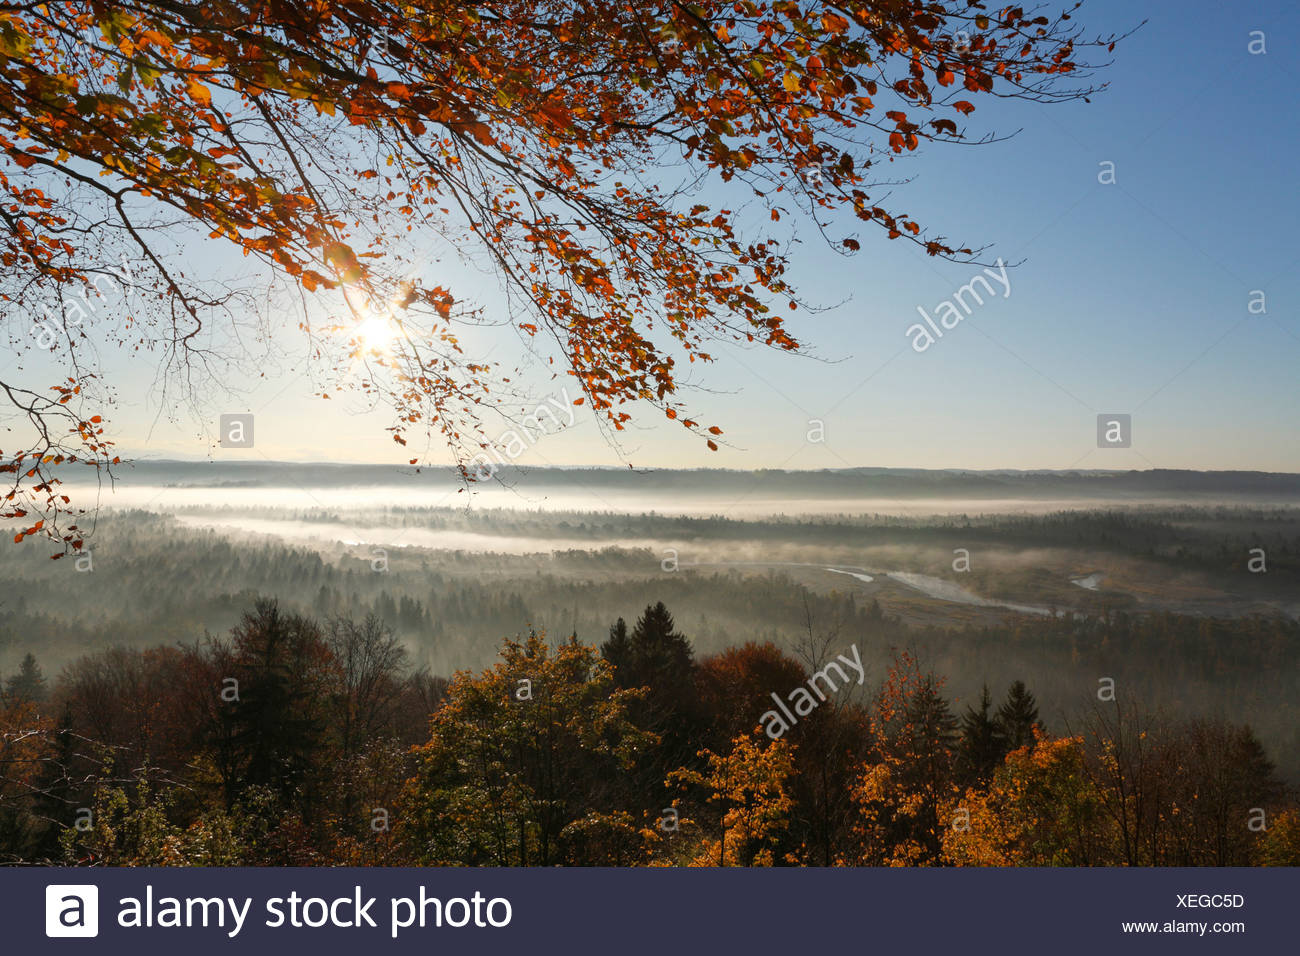 Morning mood in the Pupplinger riparian forest near Wolfratshausen, Isar wetlands, Upper Bavaria, Germany, Europe - Stock Image